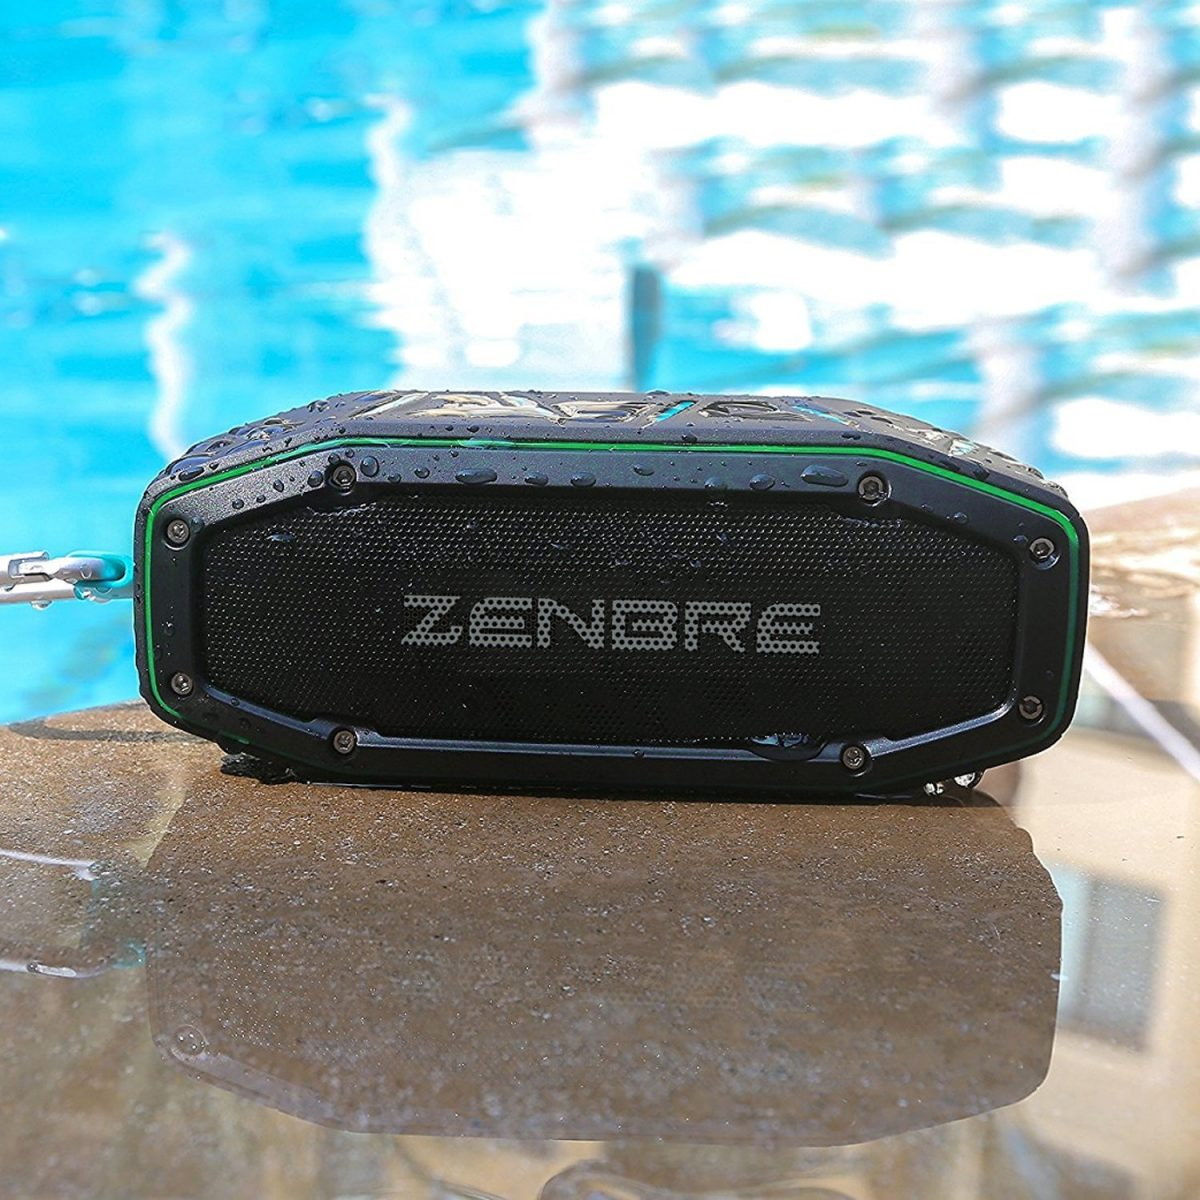 Review de altavoz Bluetooth inalámbrico Zenbre D6